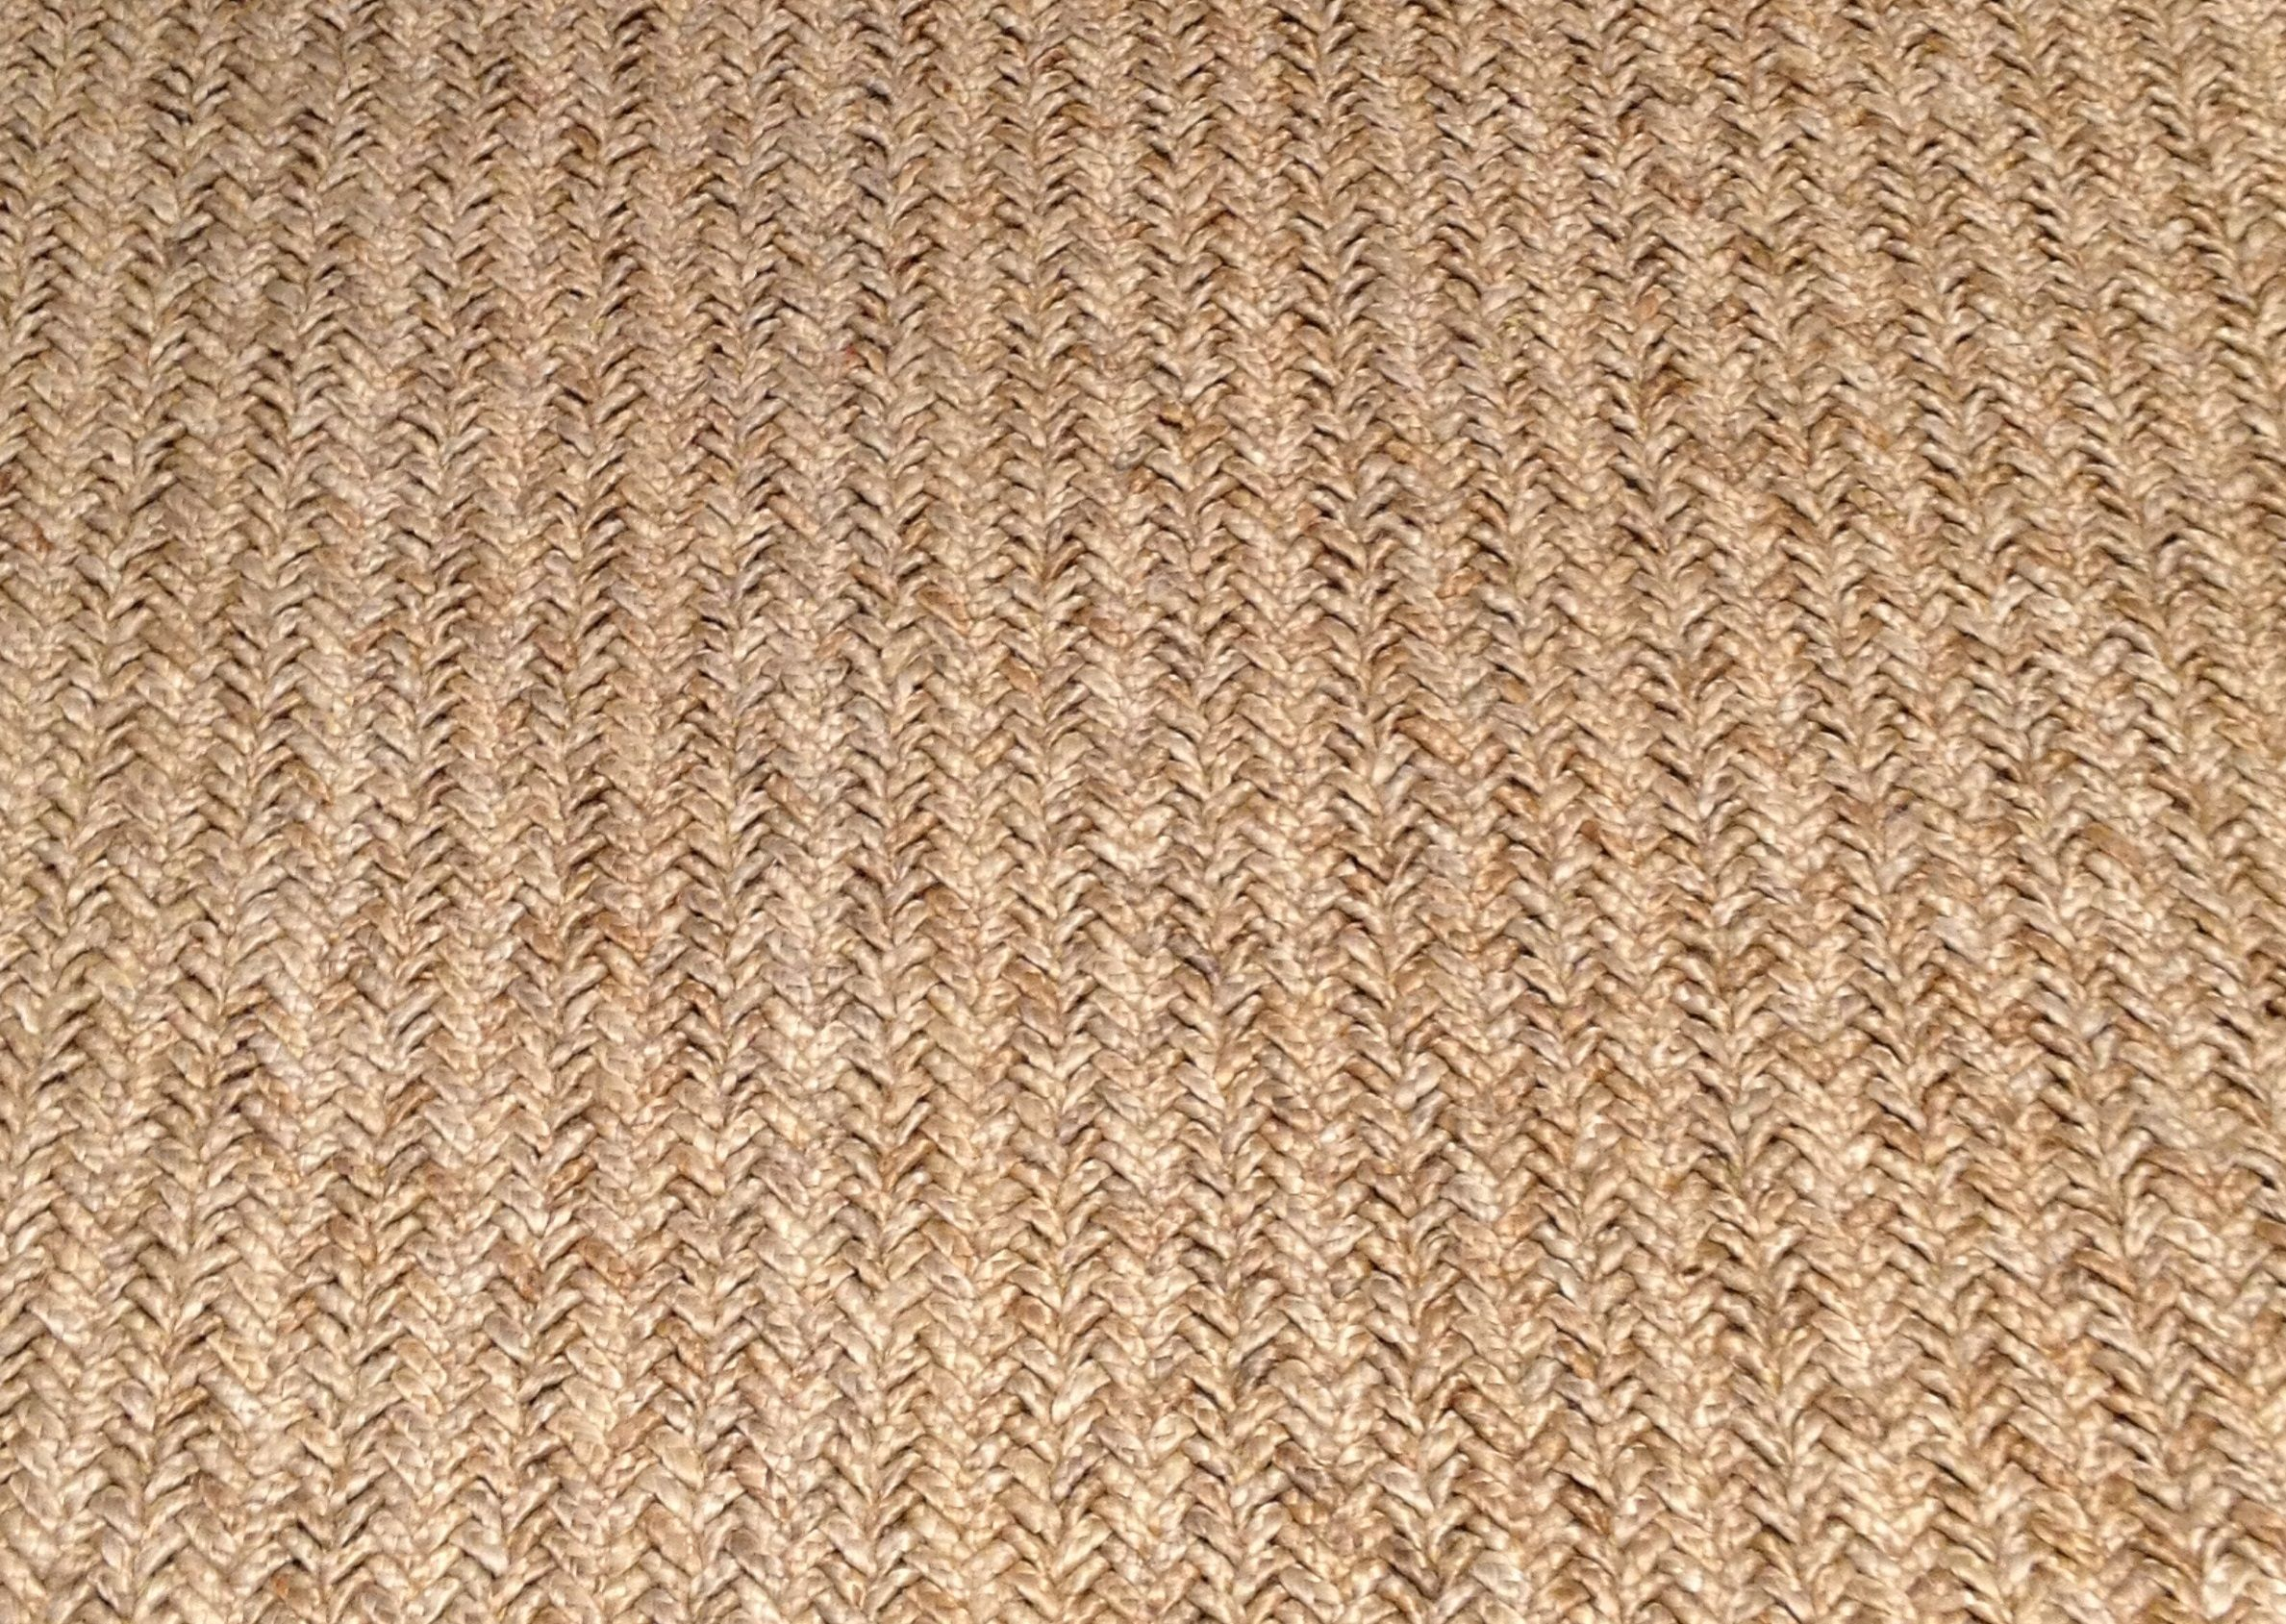 Ali Braided Jute Hand Made Rug By Tim Page Carpets